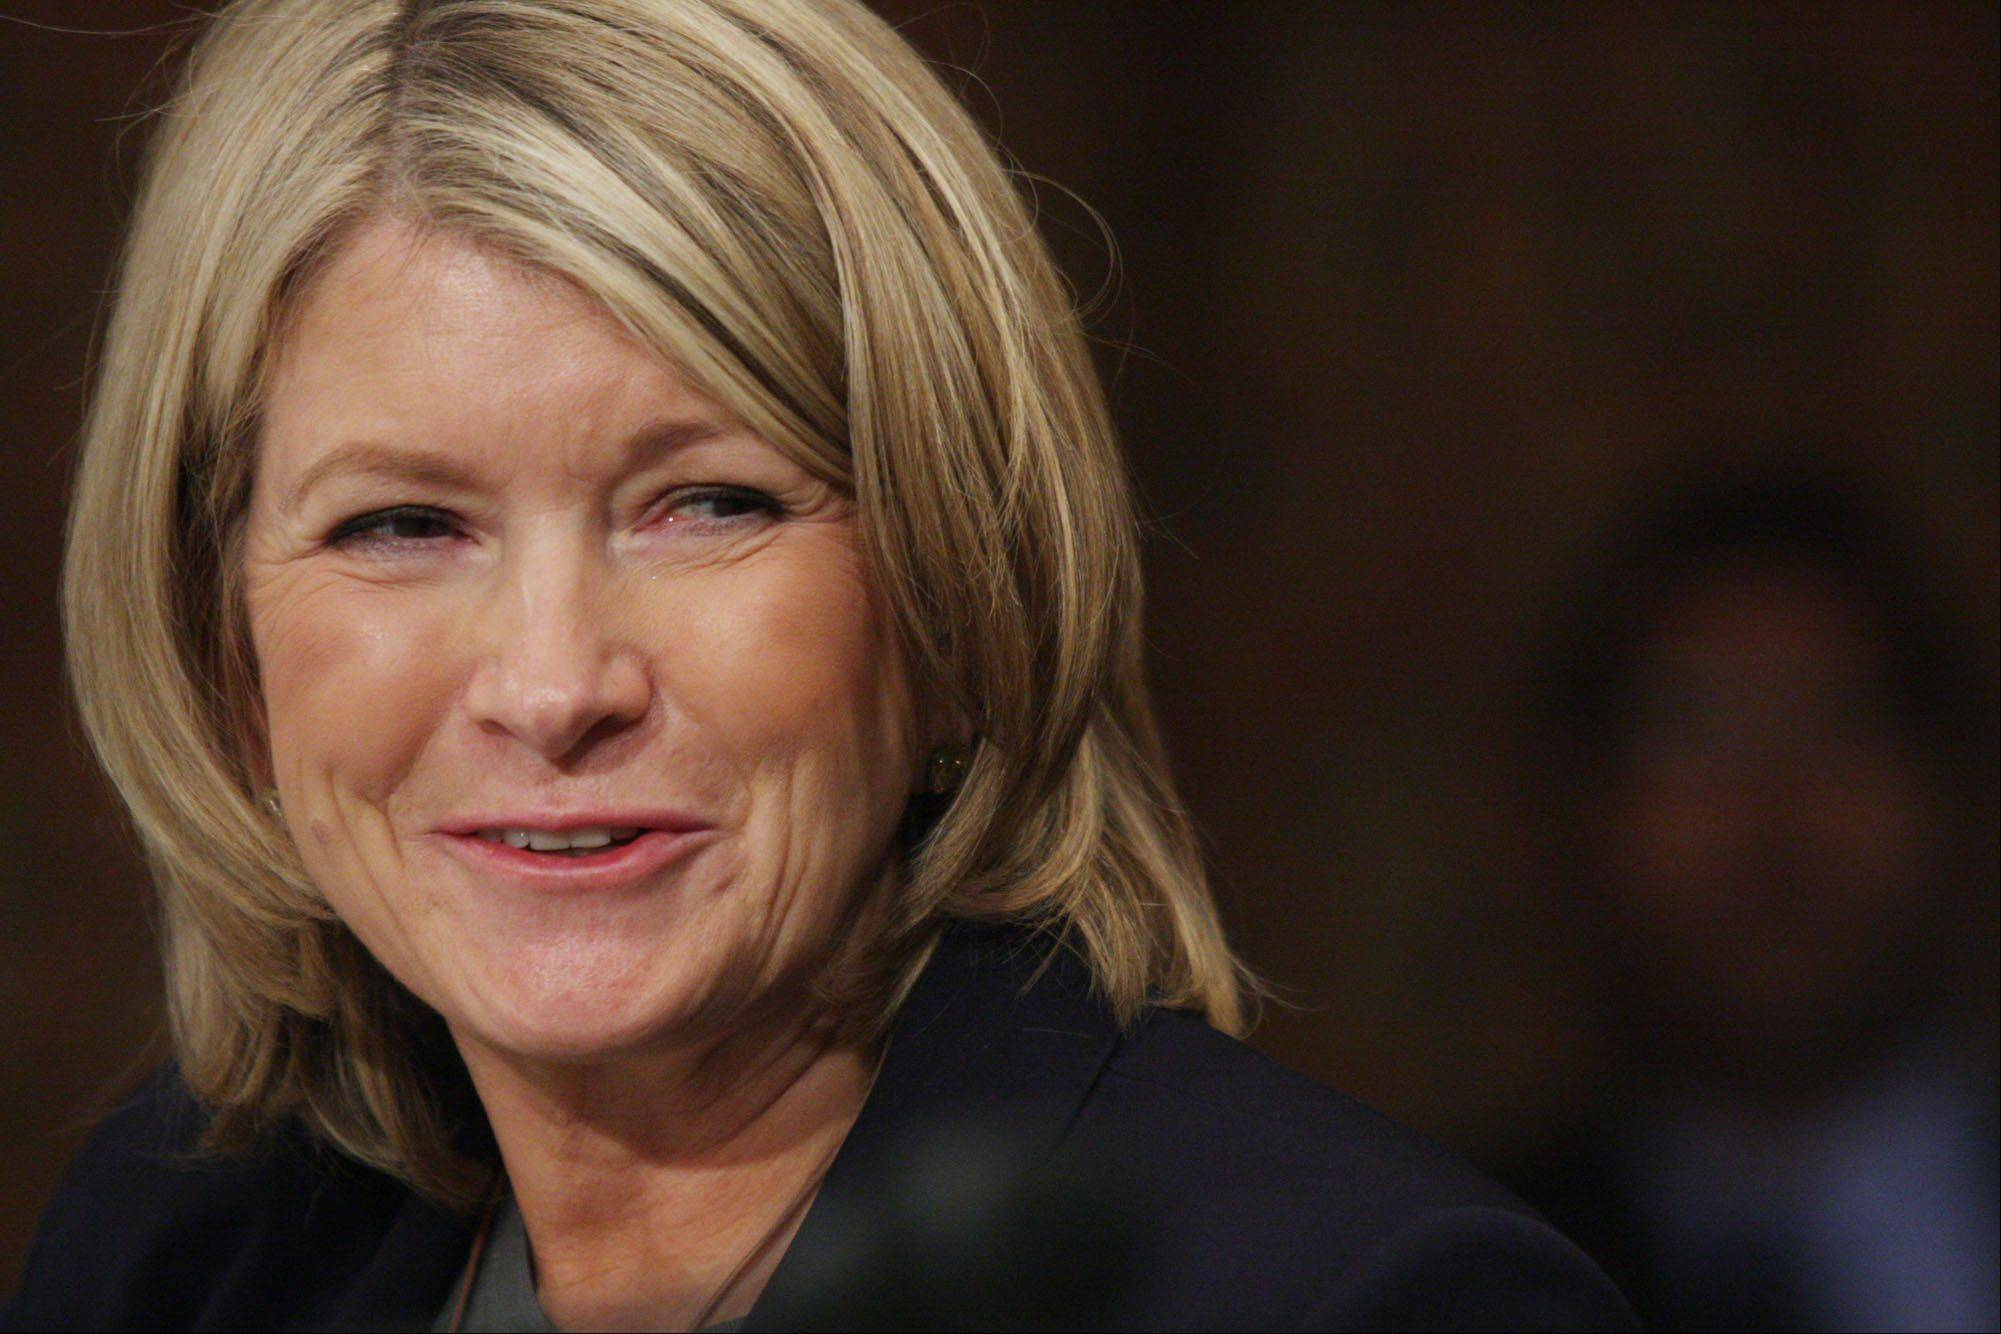 J.C. Penney is reportedly dumping the Martha Stewart brand, after sales of the home maven�s goods didn�t live up to expectations.